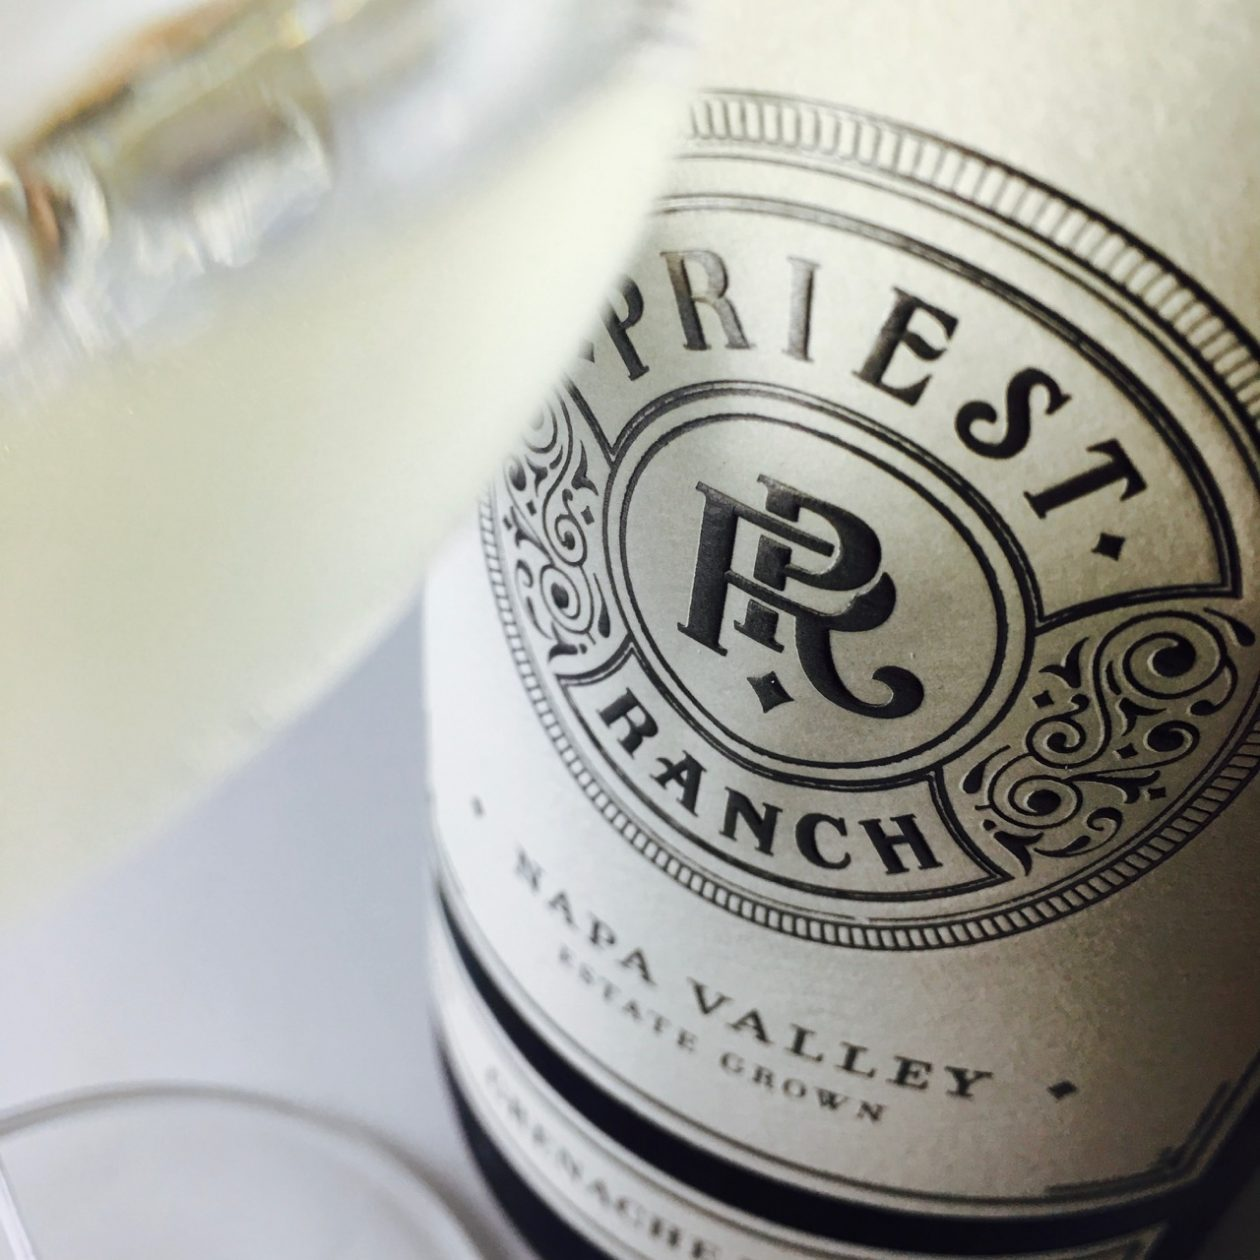 2015 Priest Ranch Grenache Blanc Napa Valley